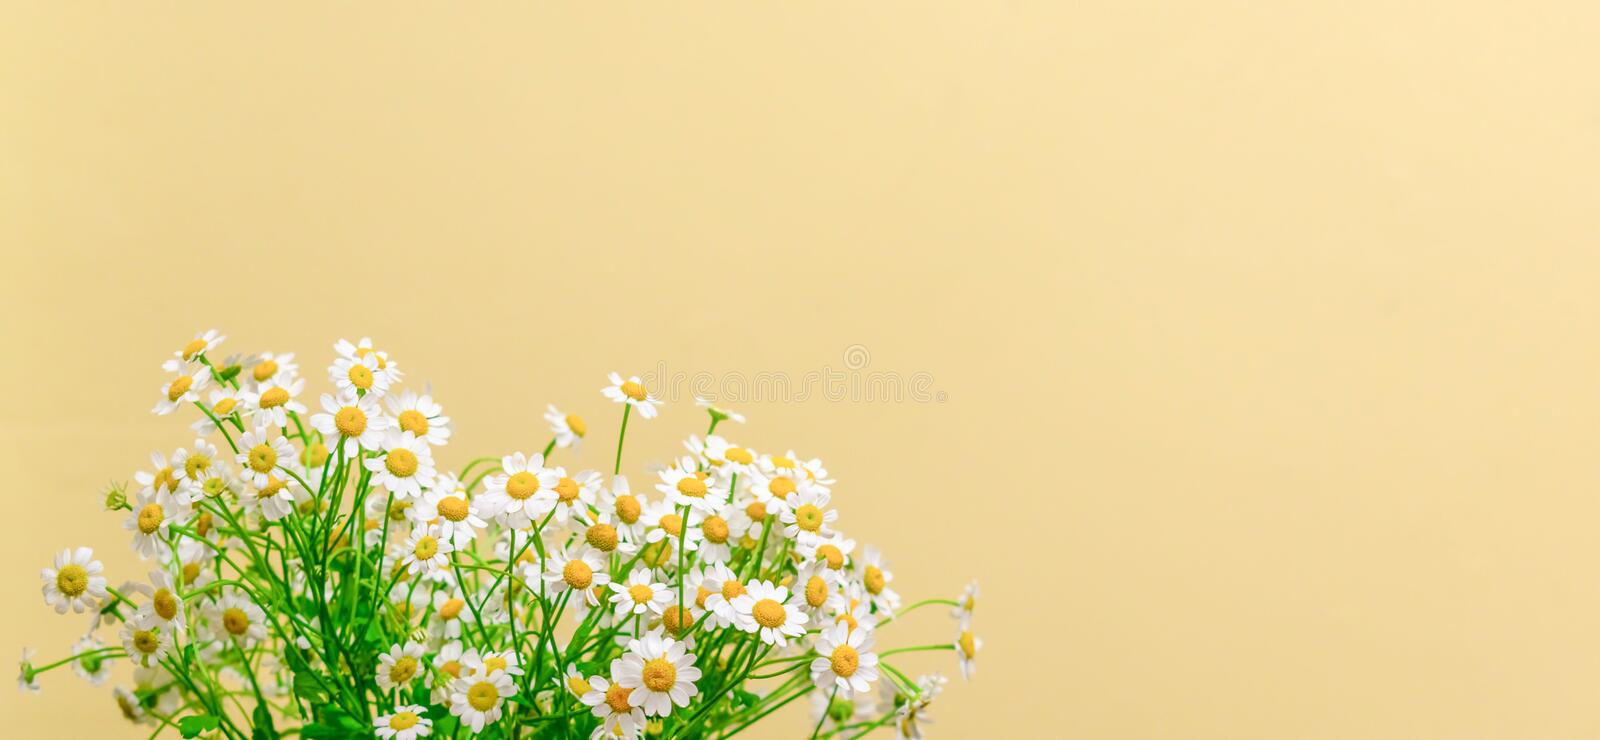 Bright and cheerful chamomile flower banner stock image